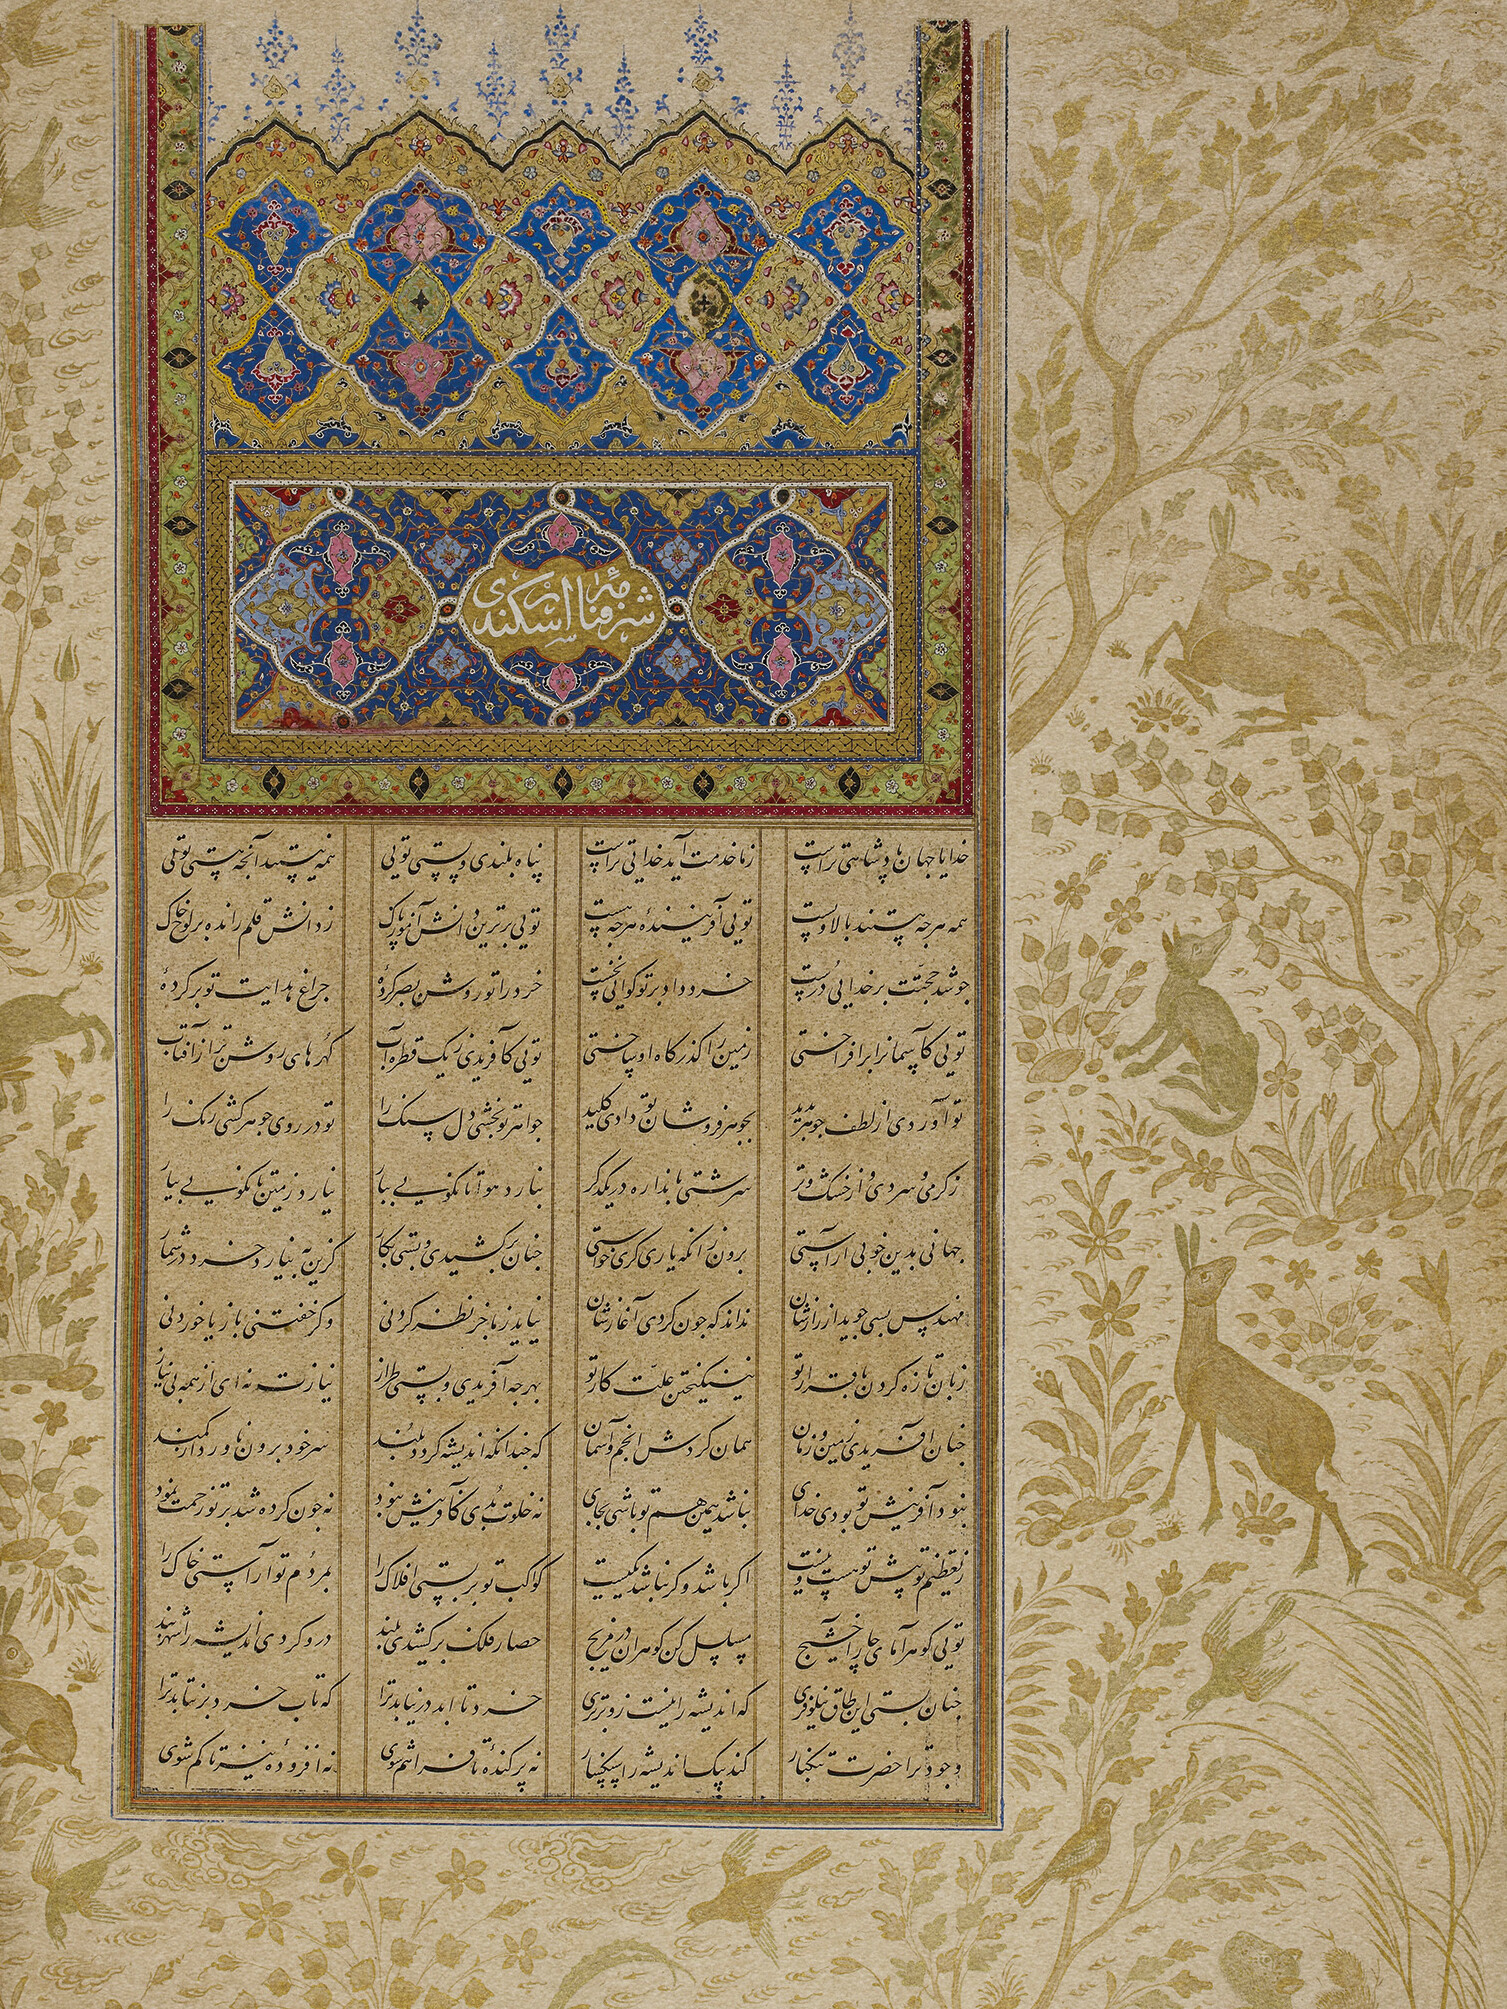 Page of Khamsa manuscript with deer in the borders